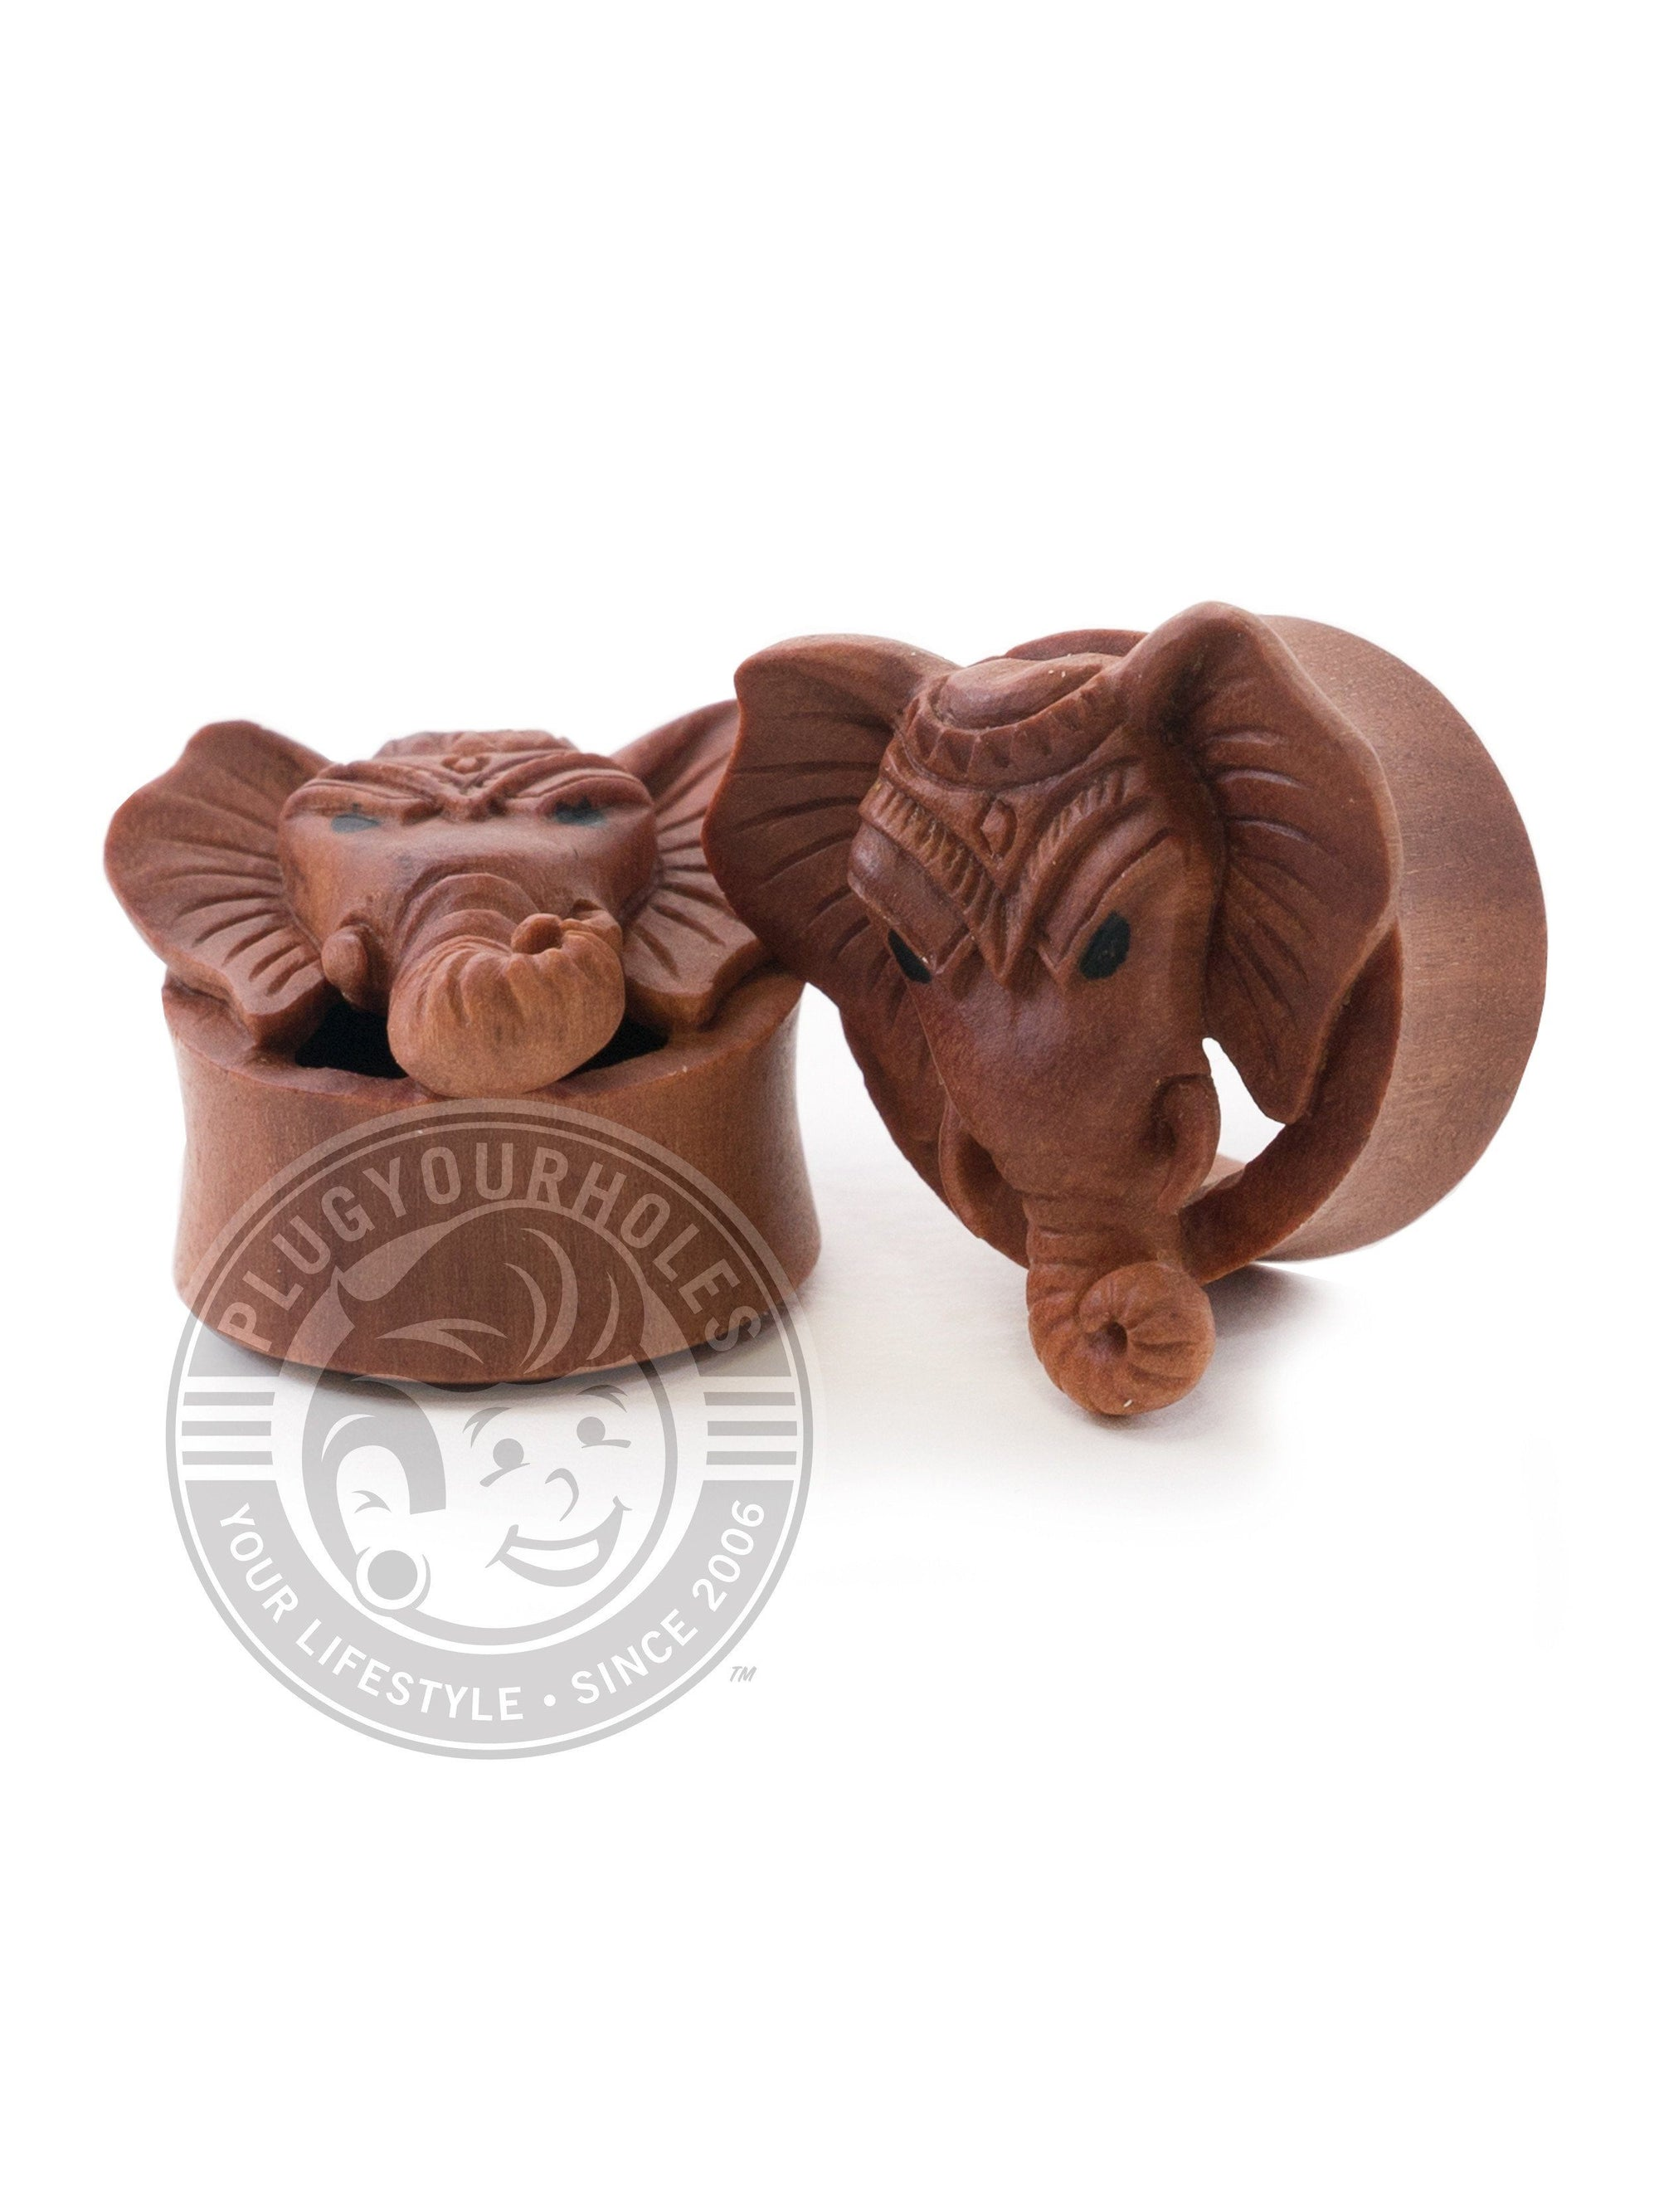 Elephant Carved Sawo Wood Plugs